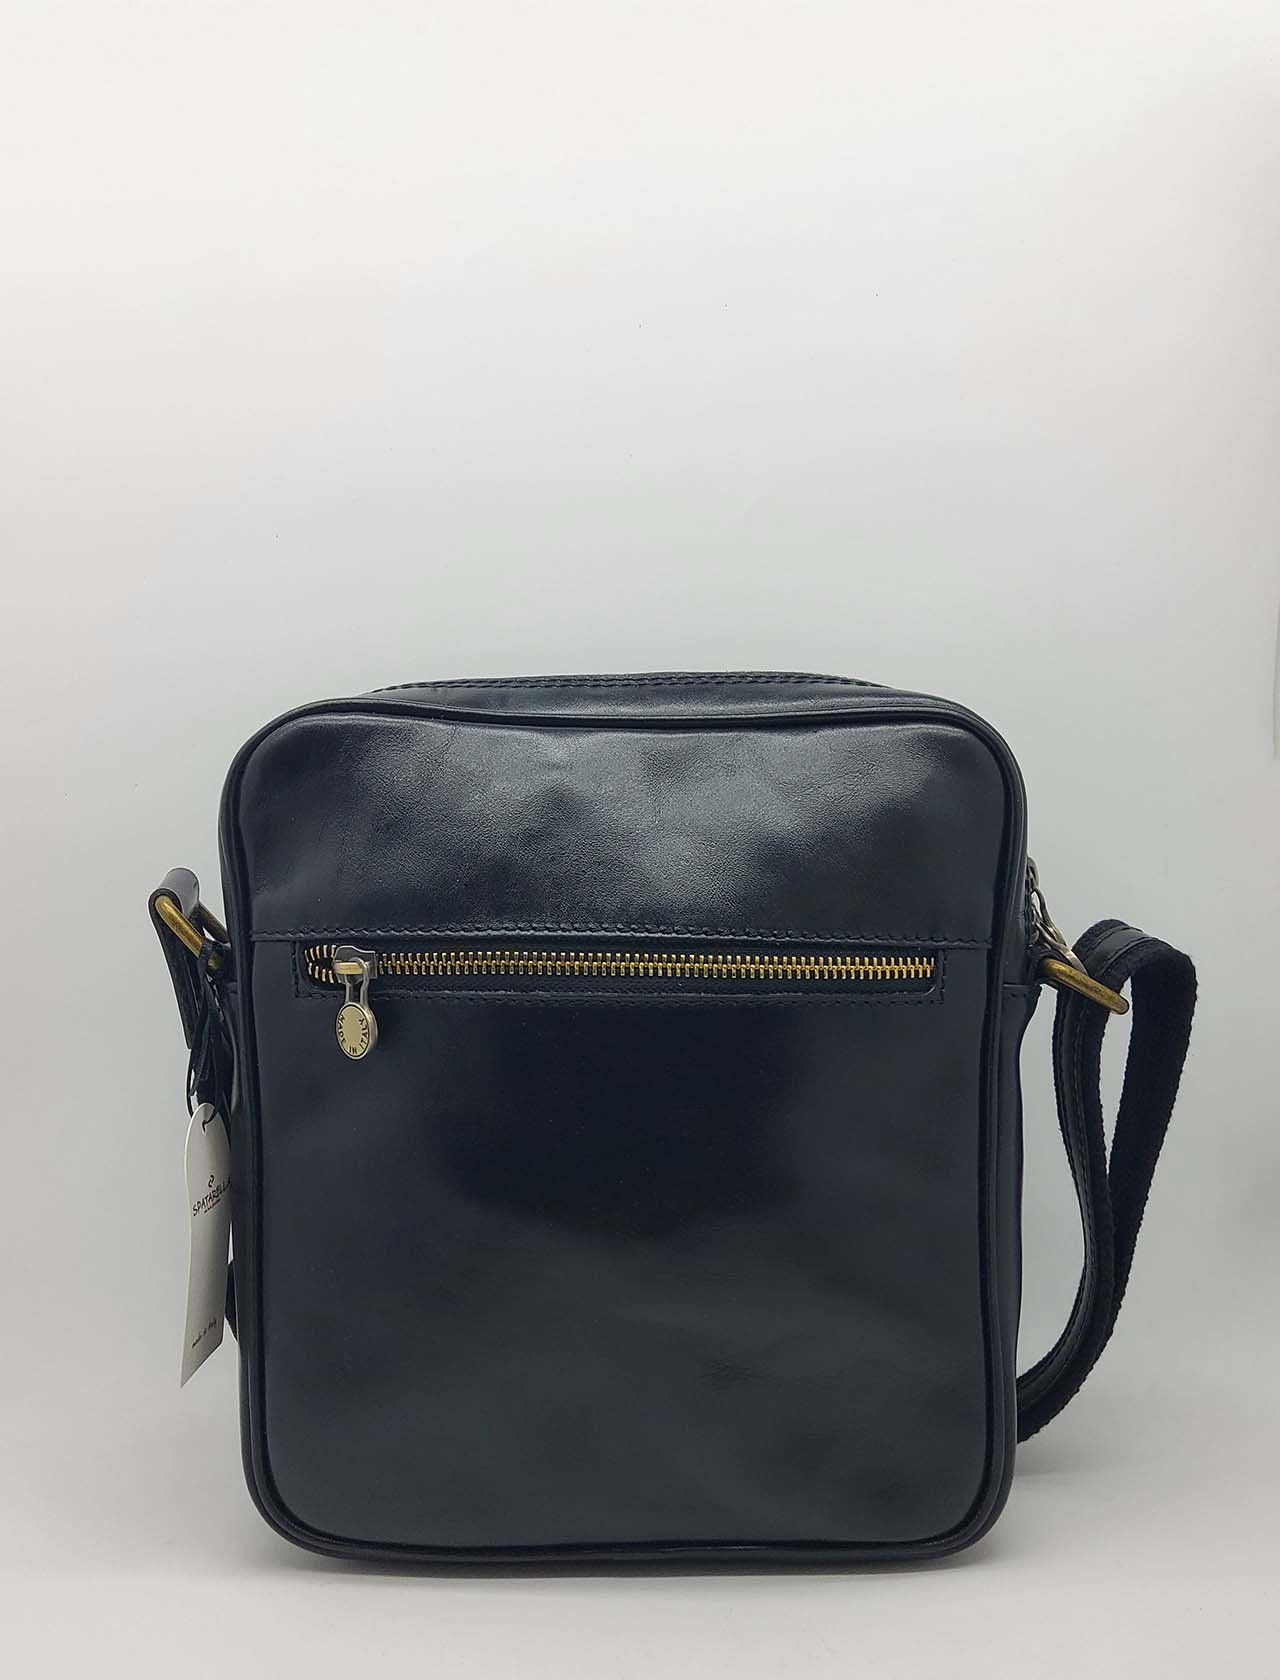 Men's Accessories Large Bag in Black Leather with Adjustable Shoulder Strap and Zip Spatarella | Bags and backpacks | PEU0202001